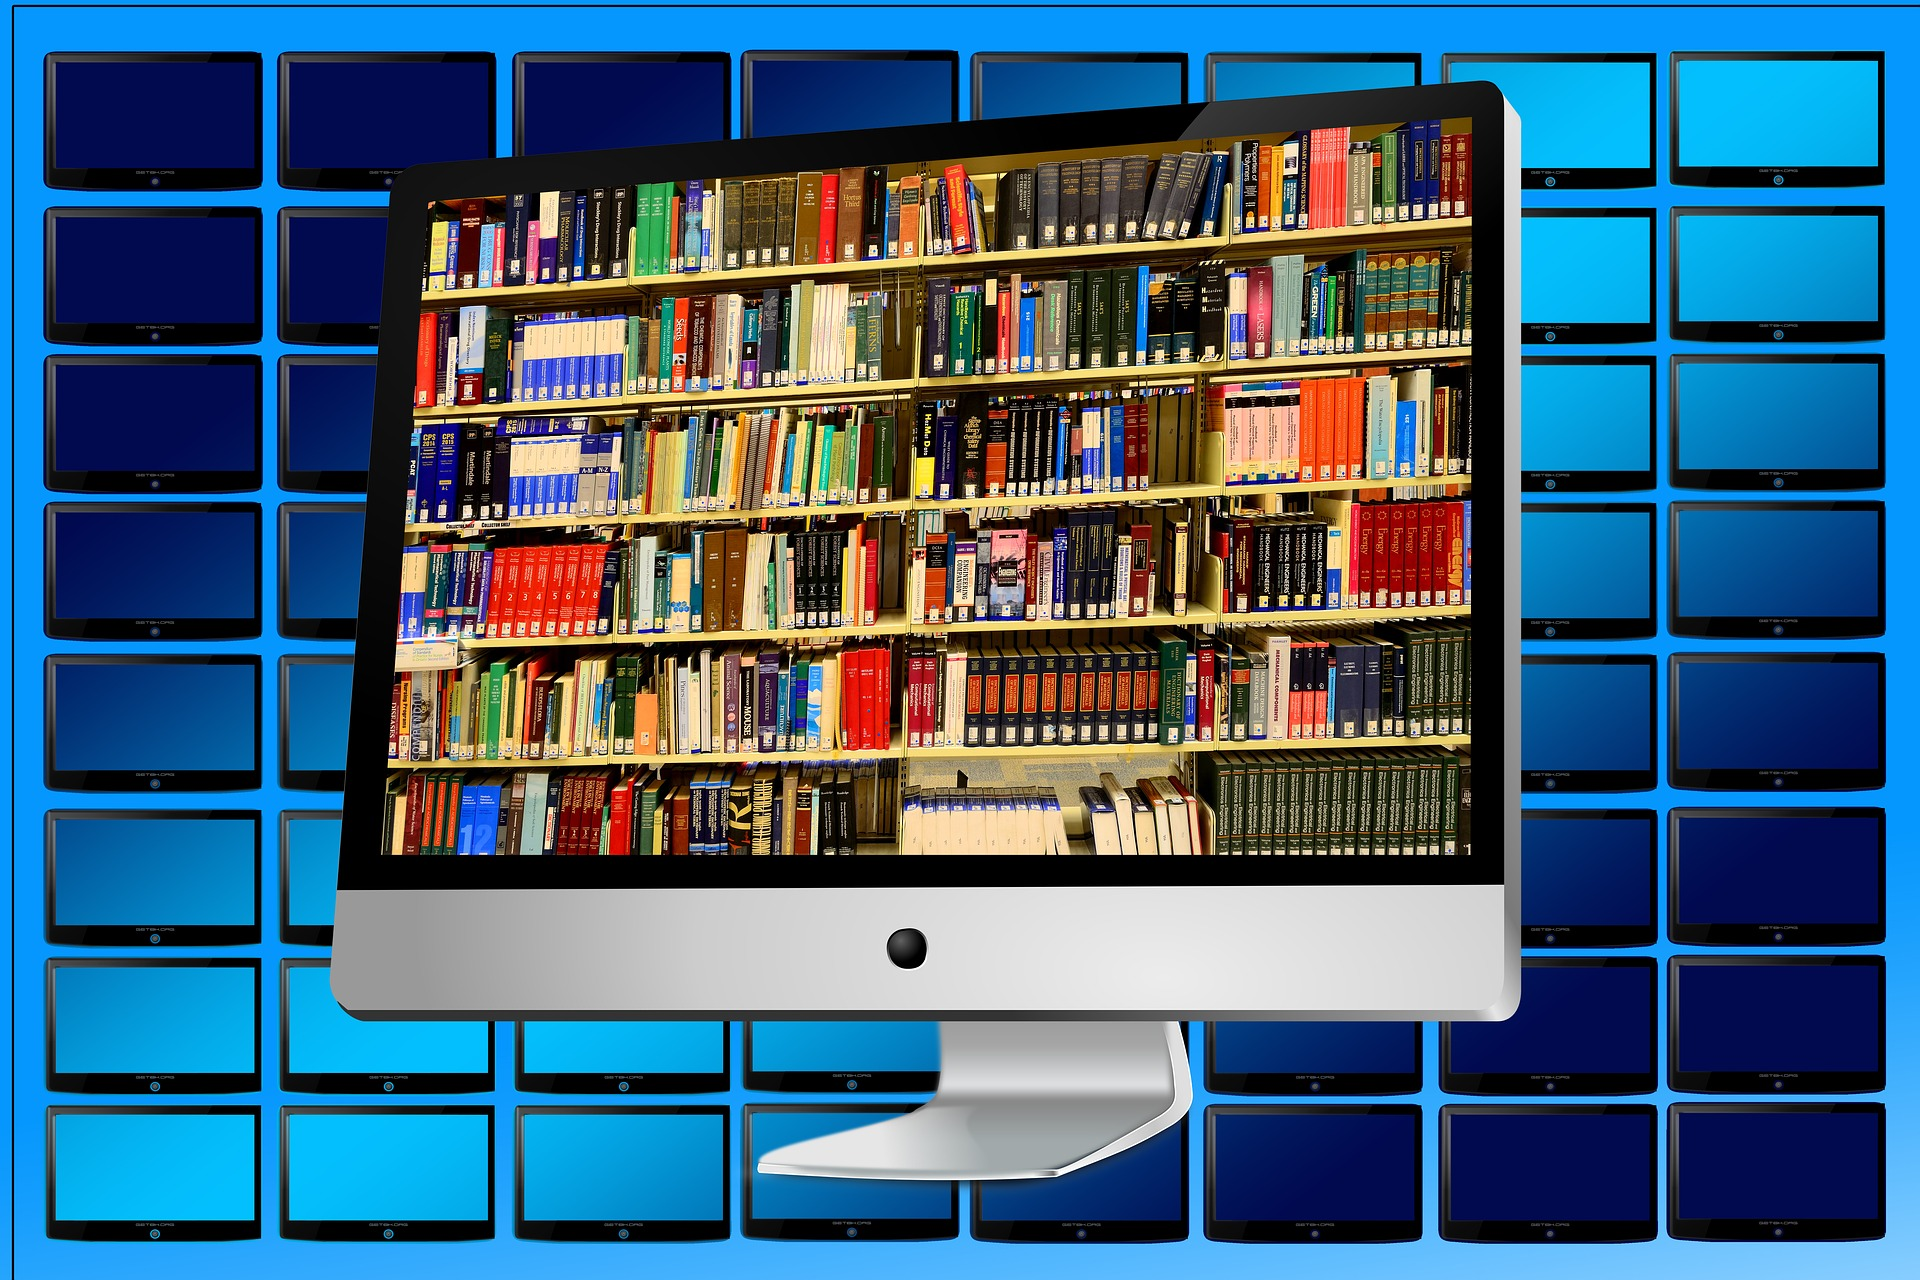 library-1666703_1920